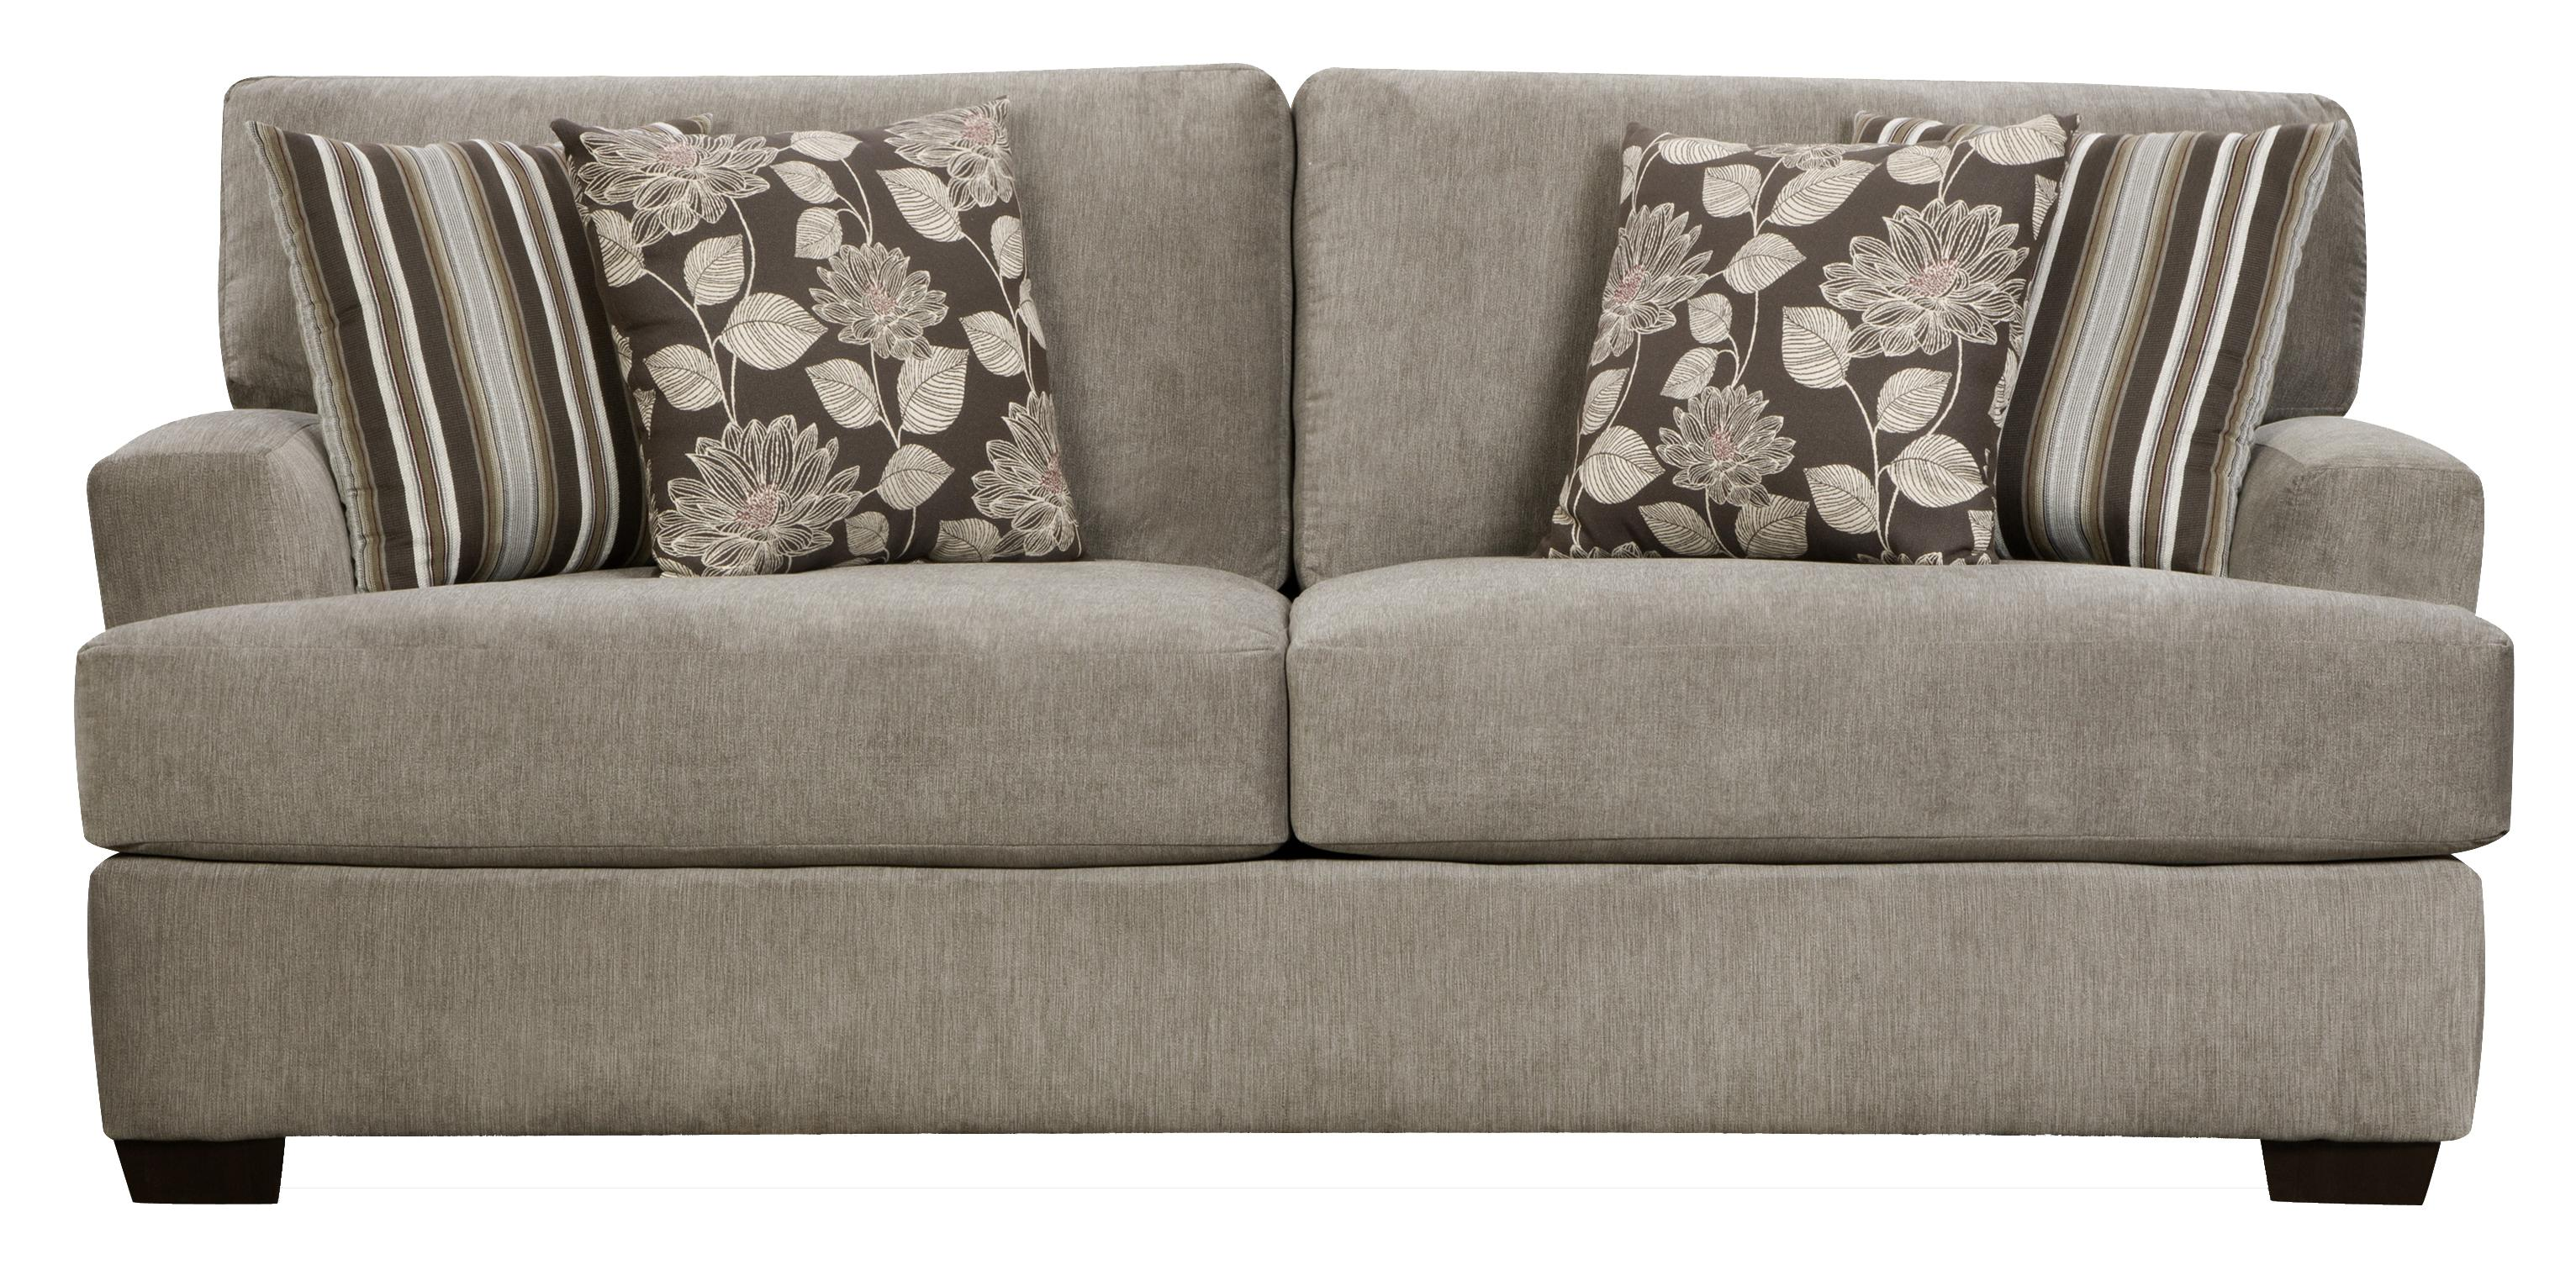 Corinthian 29A0 Sofa - Item Number: 29A3